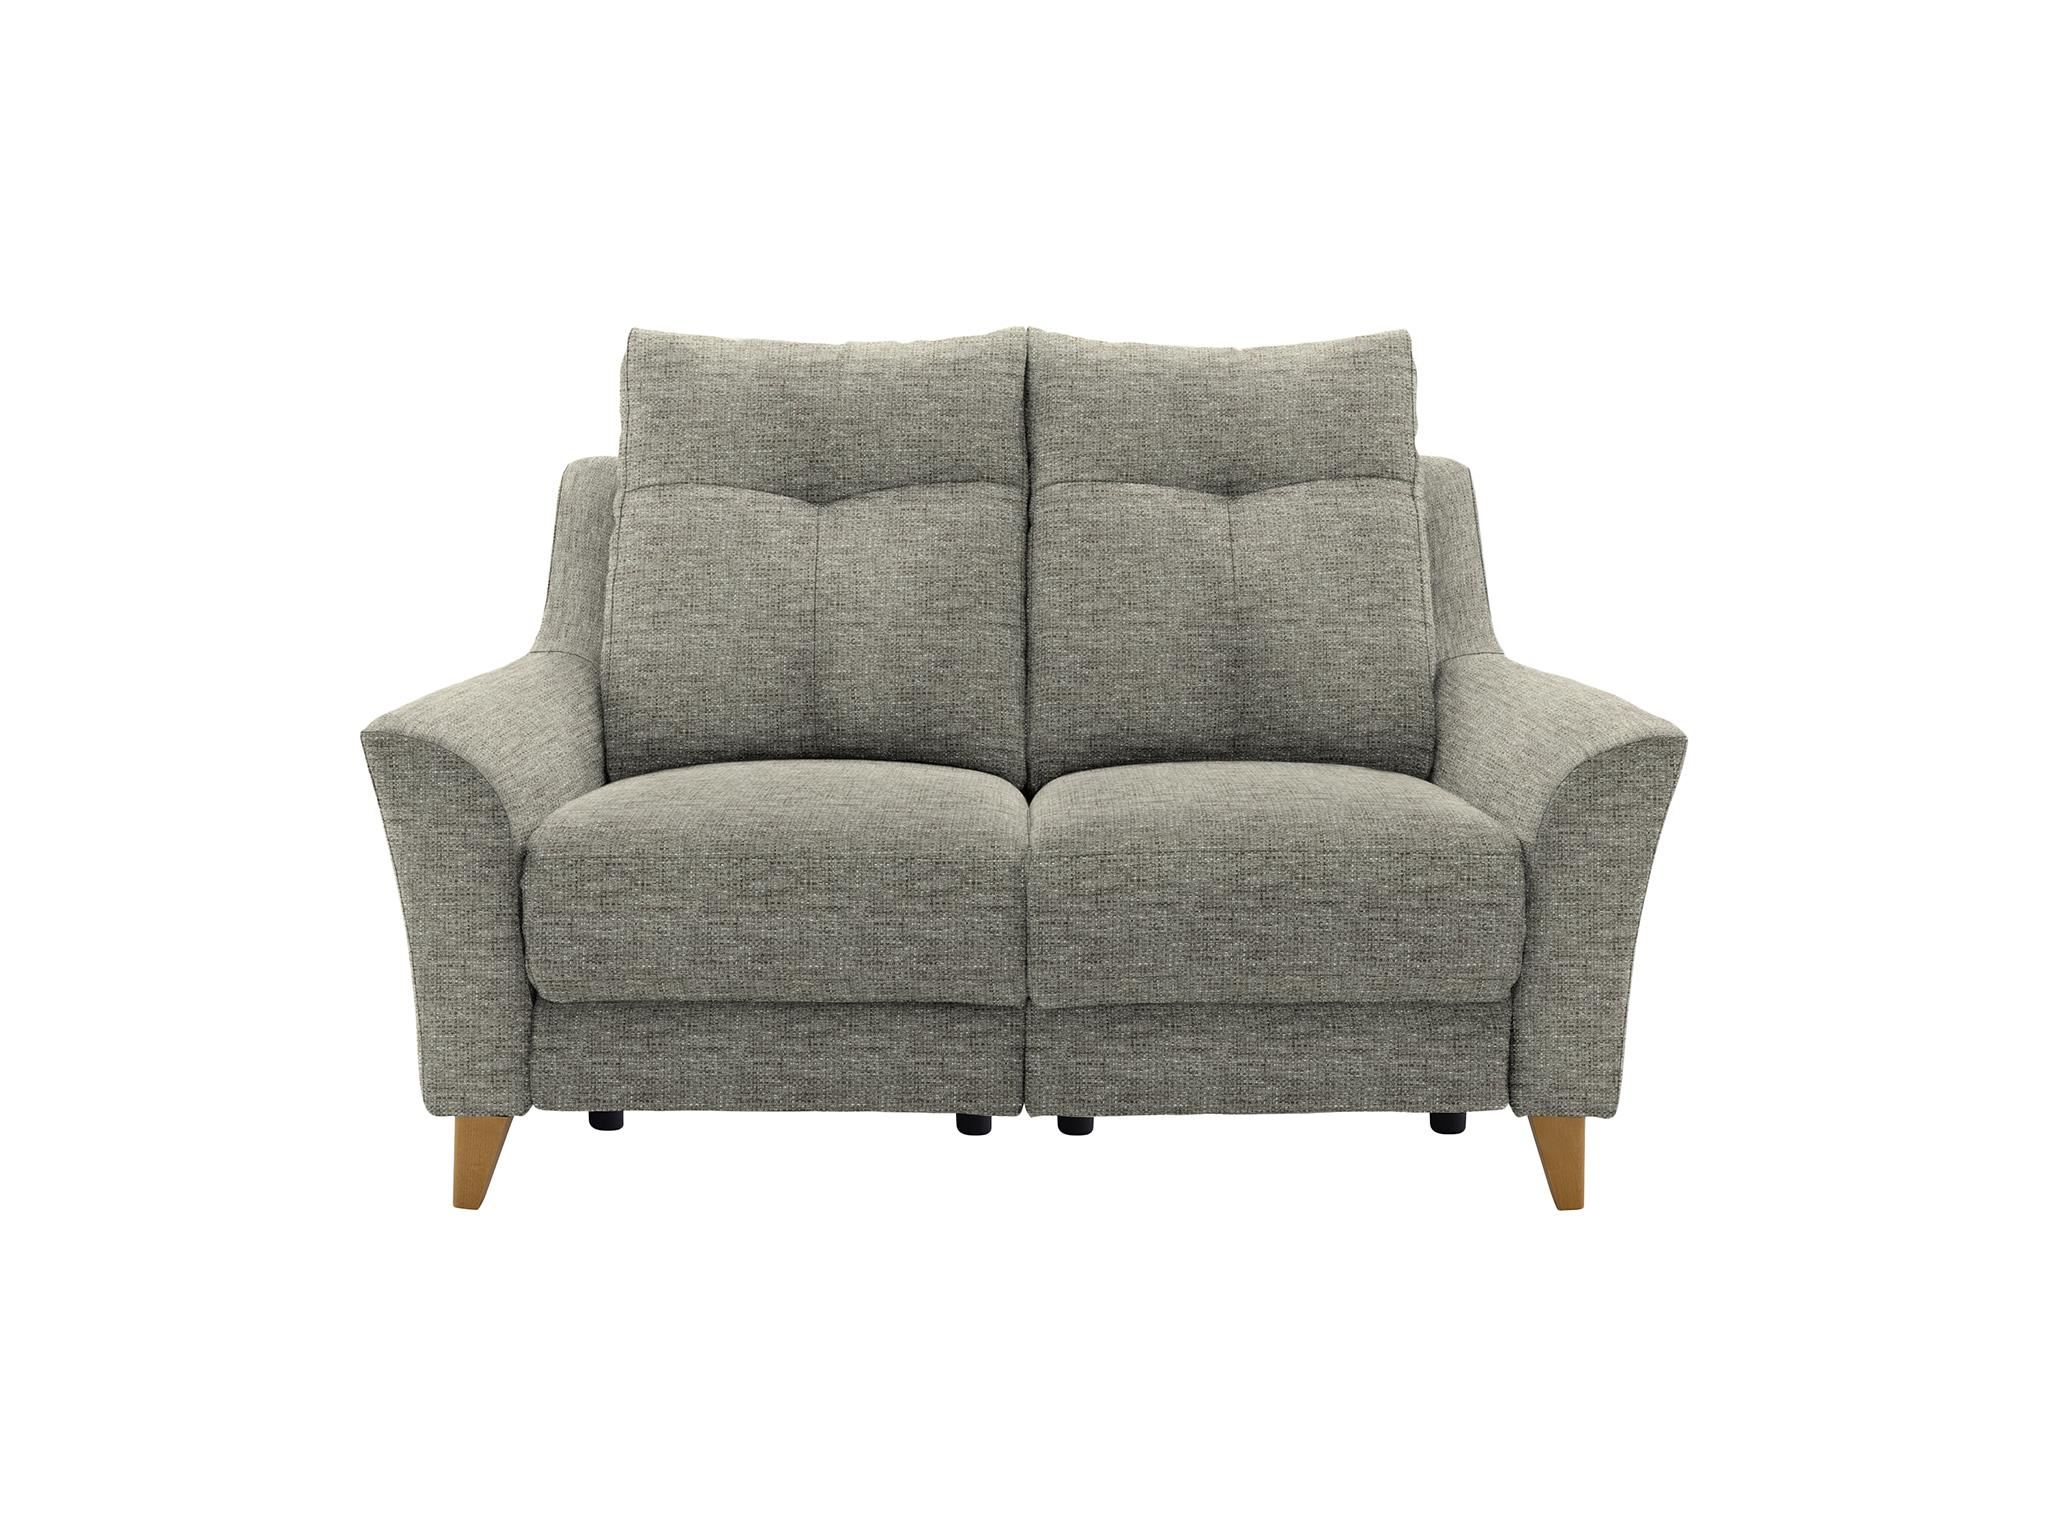 8 Best 2 Seater Sofas | The Independent Throughout London Optical Sofa Chairs (View 17 of 25)